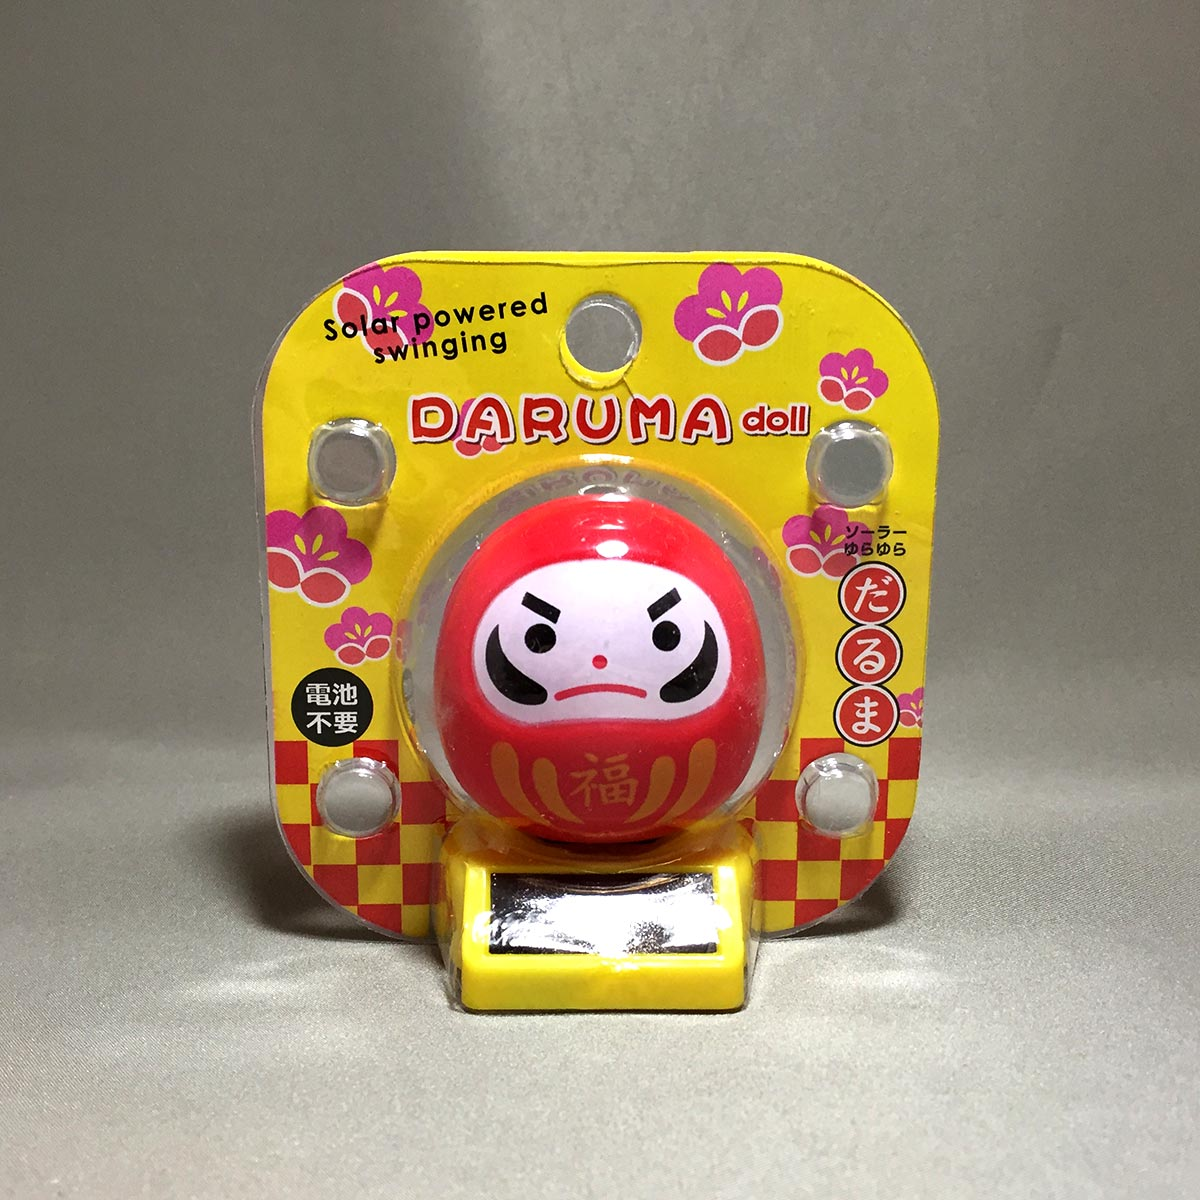 Solar Powered Swinging Daruma - Front packaging